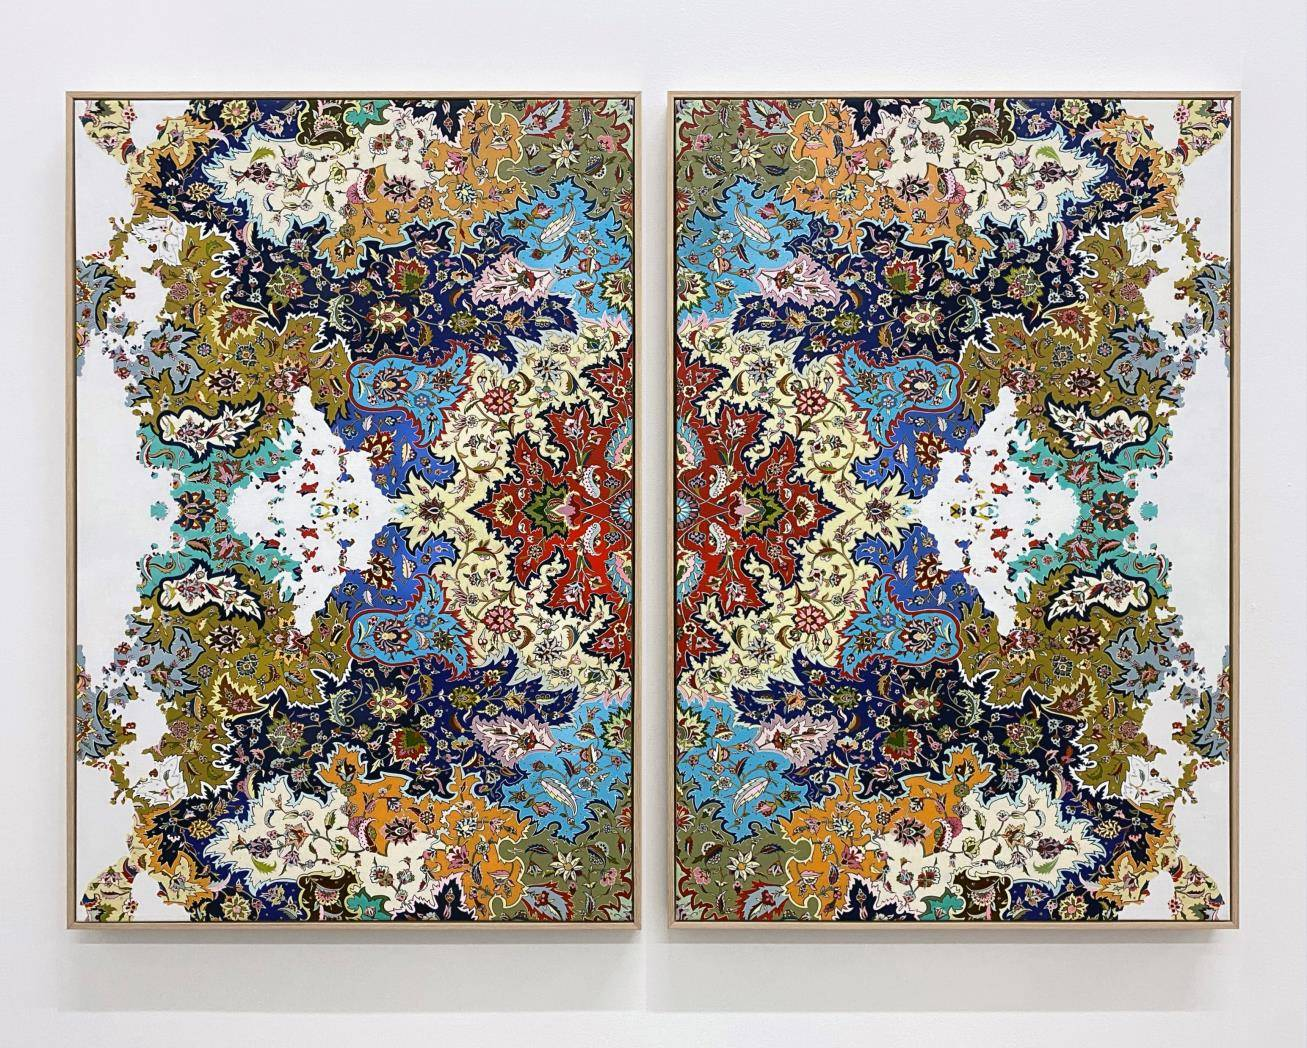 Jason Seife, Circle Takes the Square , 2020 , Oil and acrylic on canvas , 96.5 x 66 cm each, 96.5 x 142 cm total , courtesy the artist and Unit London